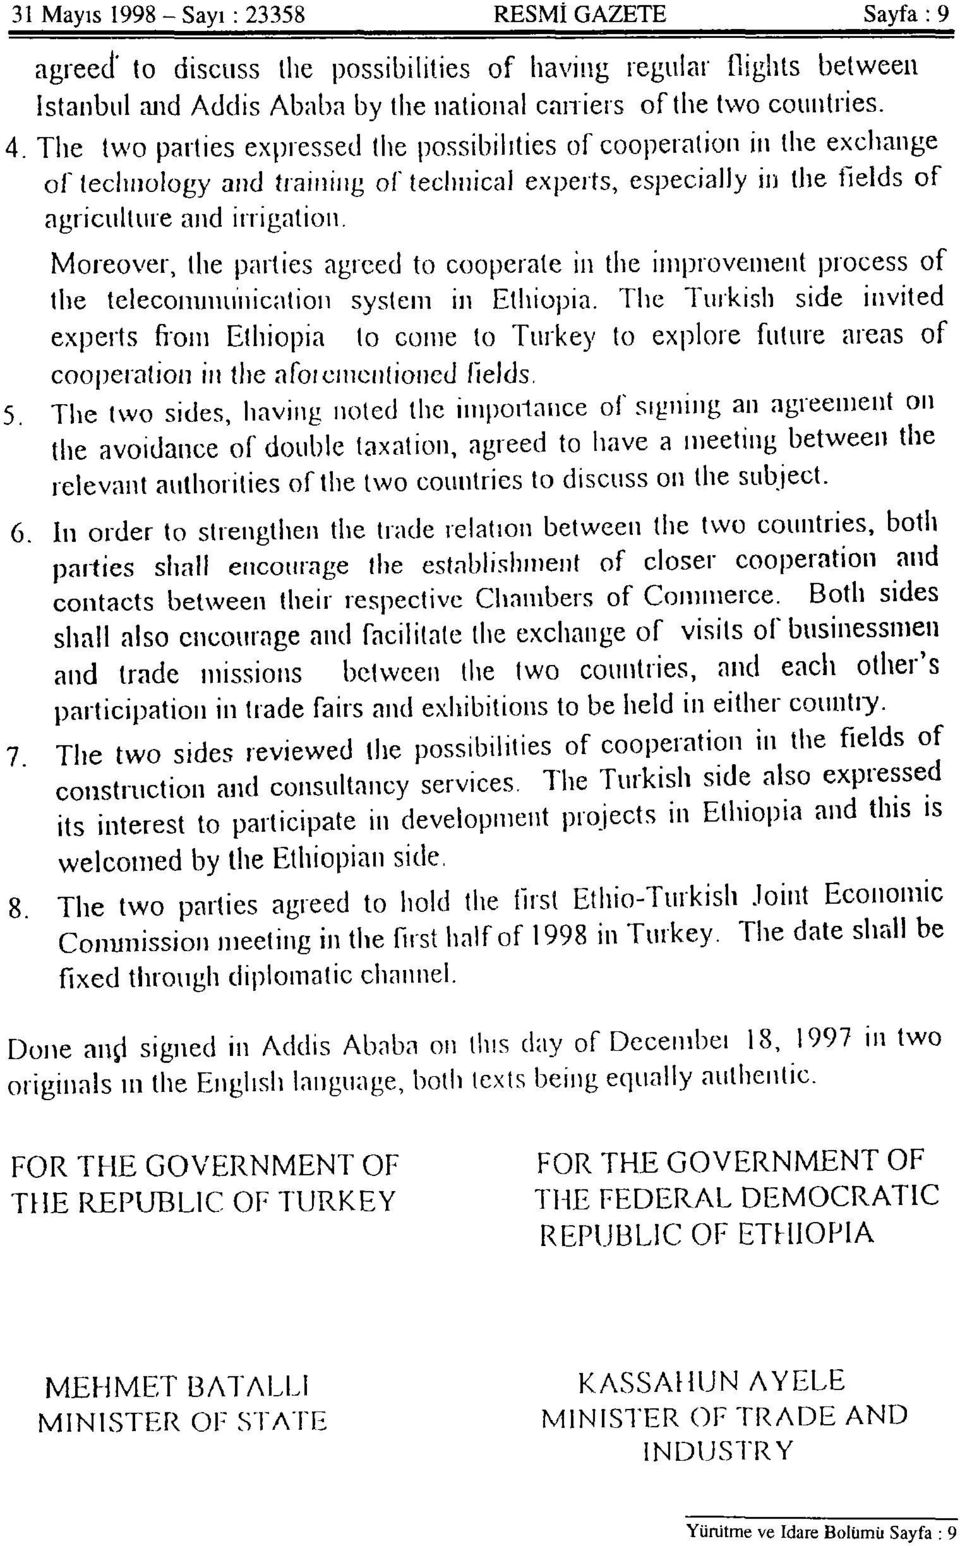 Moreover, the parties agreed to cooperate in the improvement process of the telecommunication system in Ethiopia.